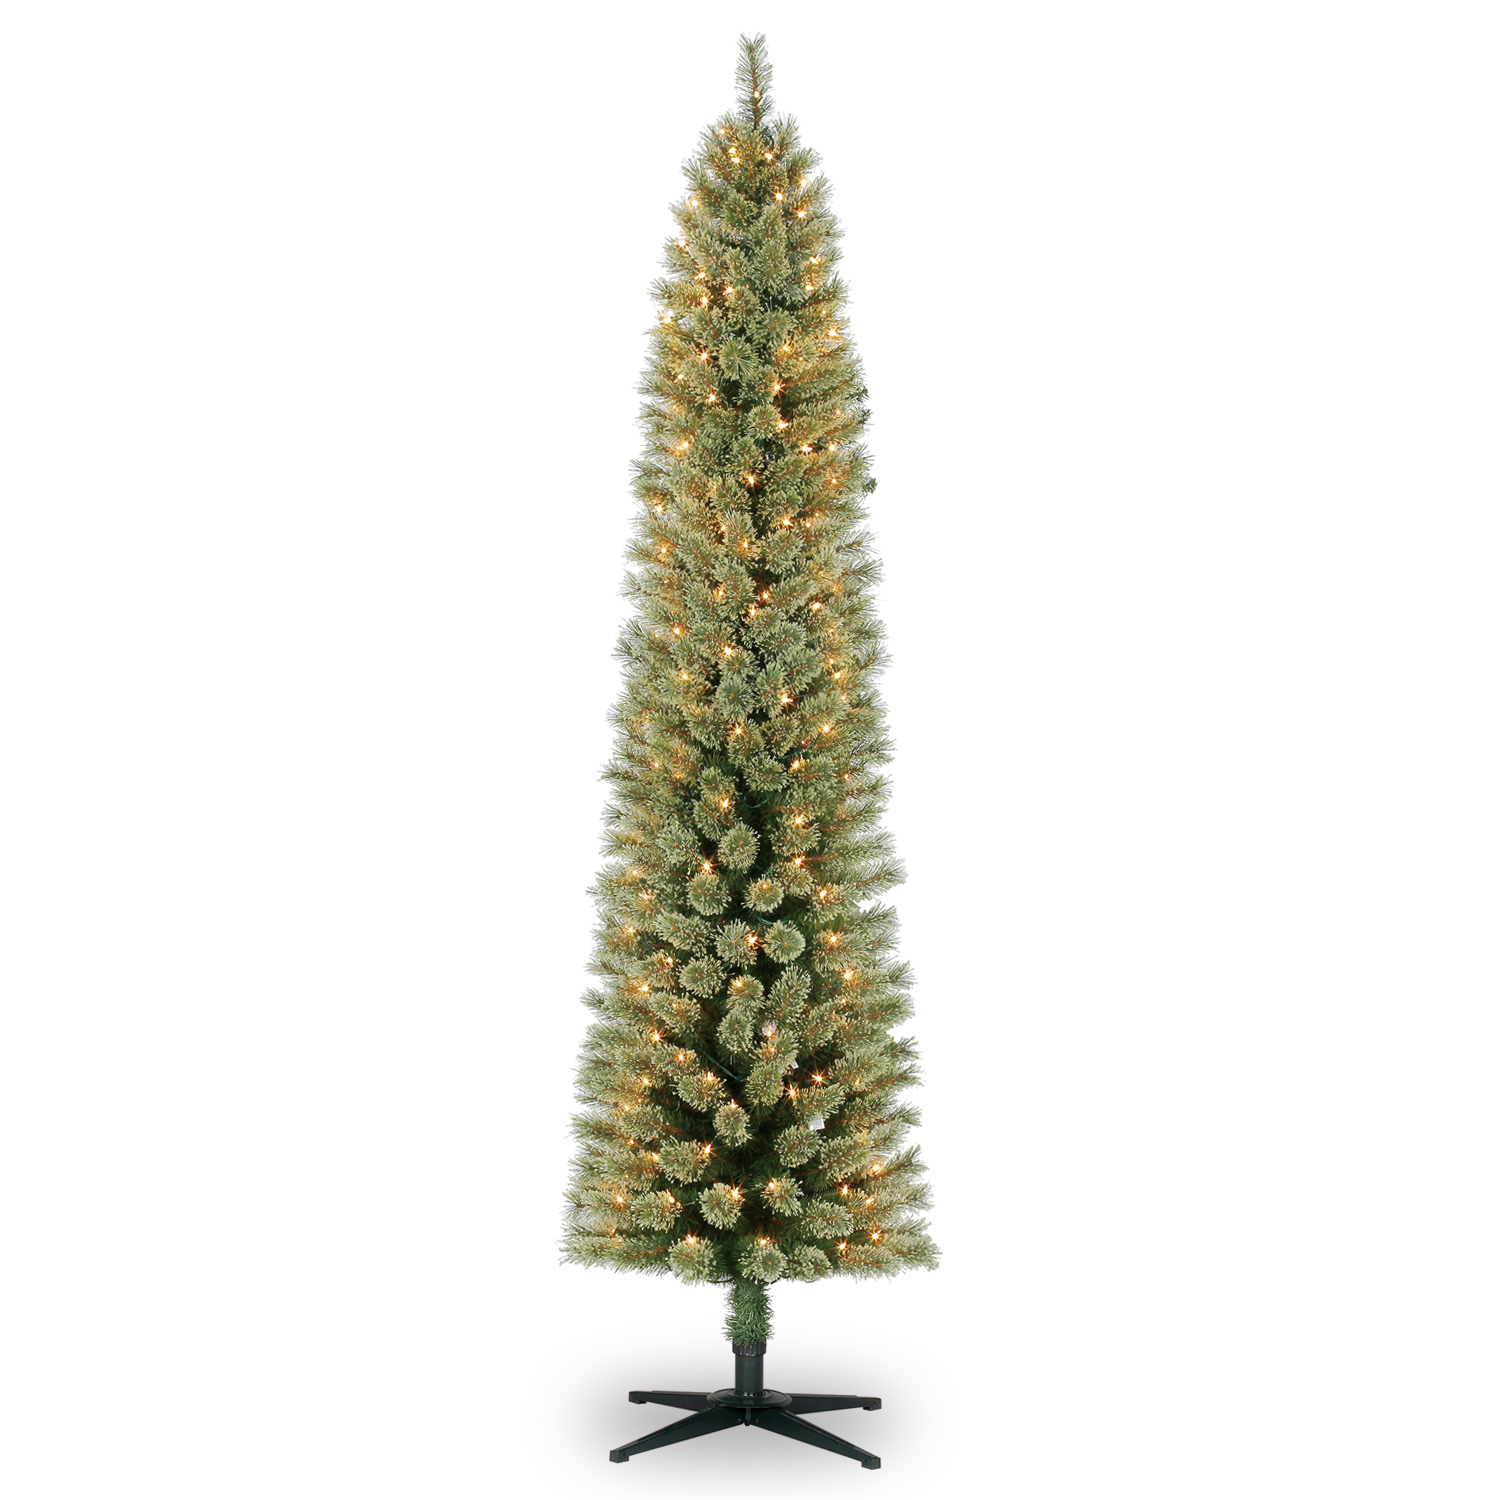 7 ft prelit green pencil cashmere artificial christmas tree clear lights by ashland